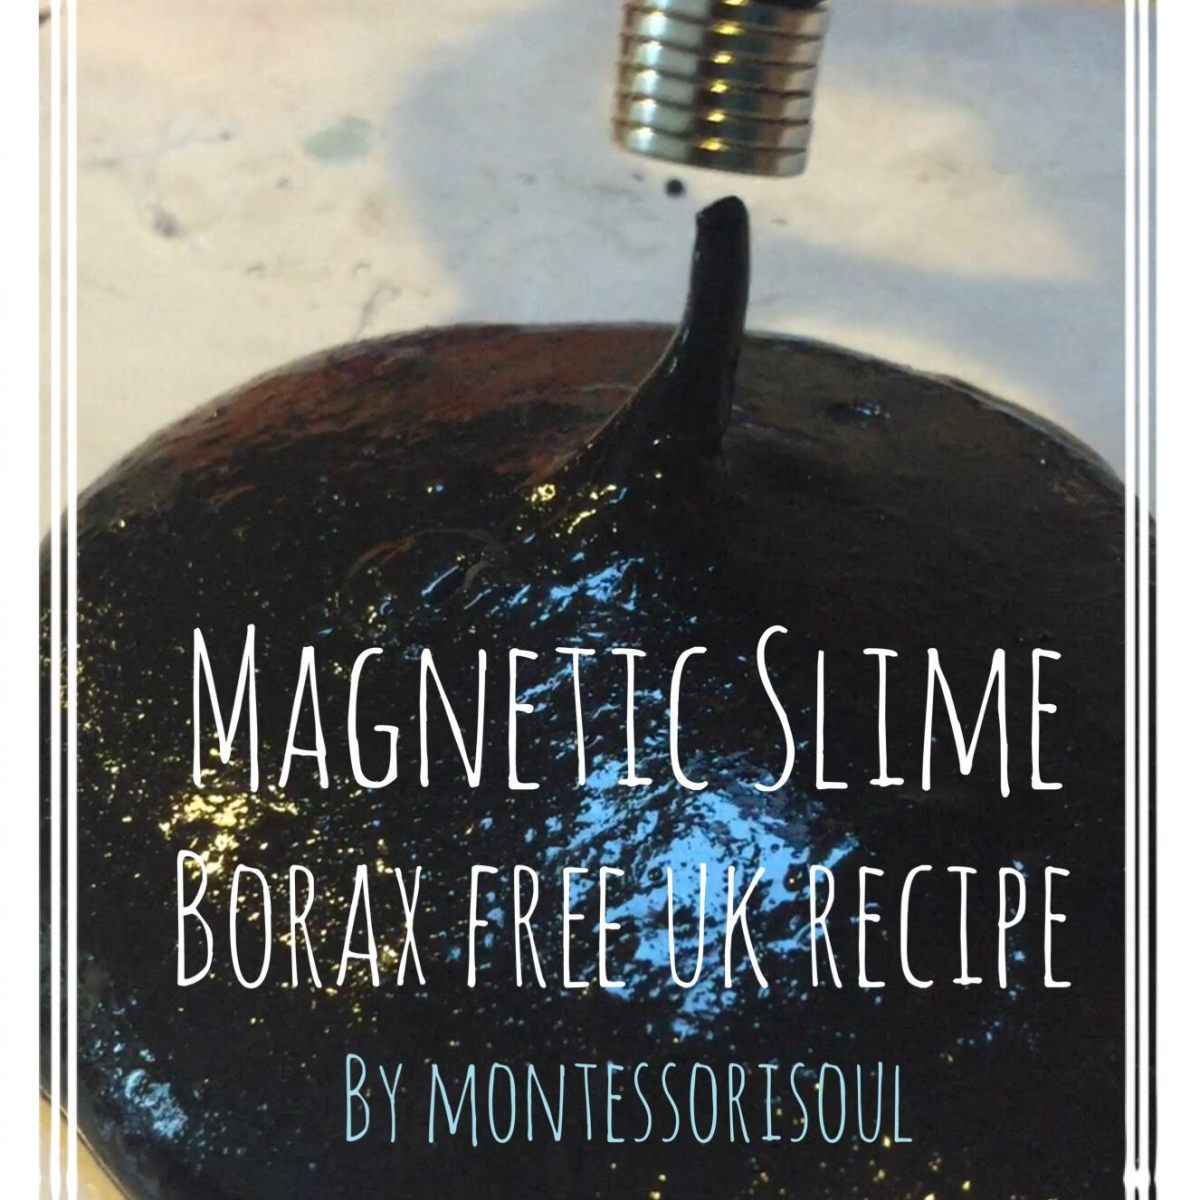 Magnetic Slime - UK recipe - Borax Free